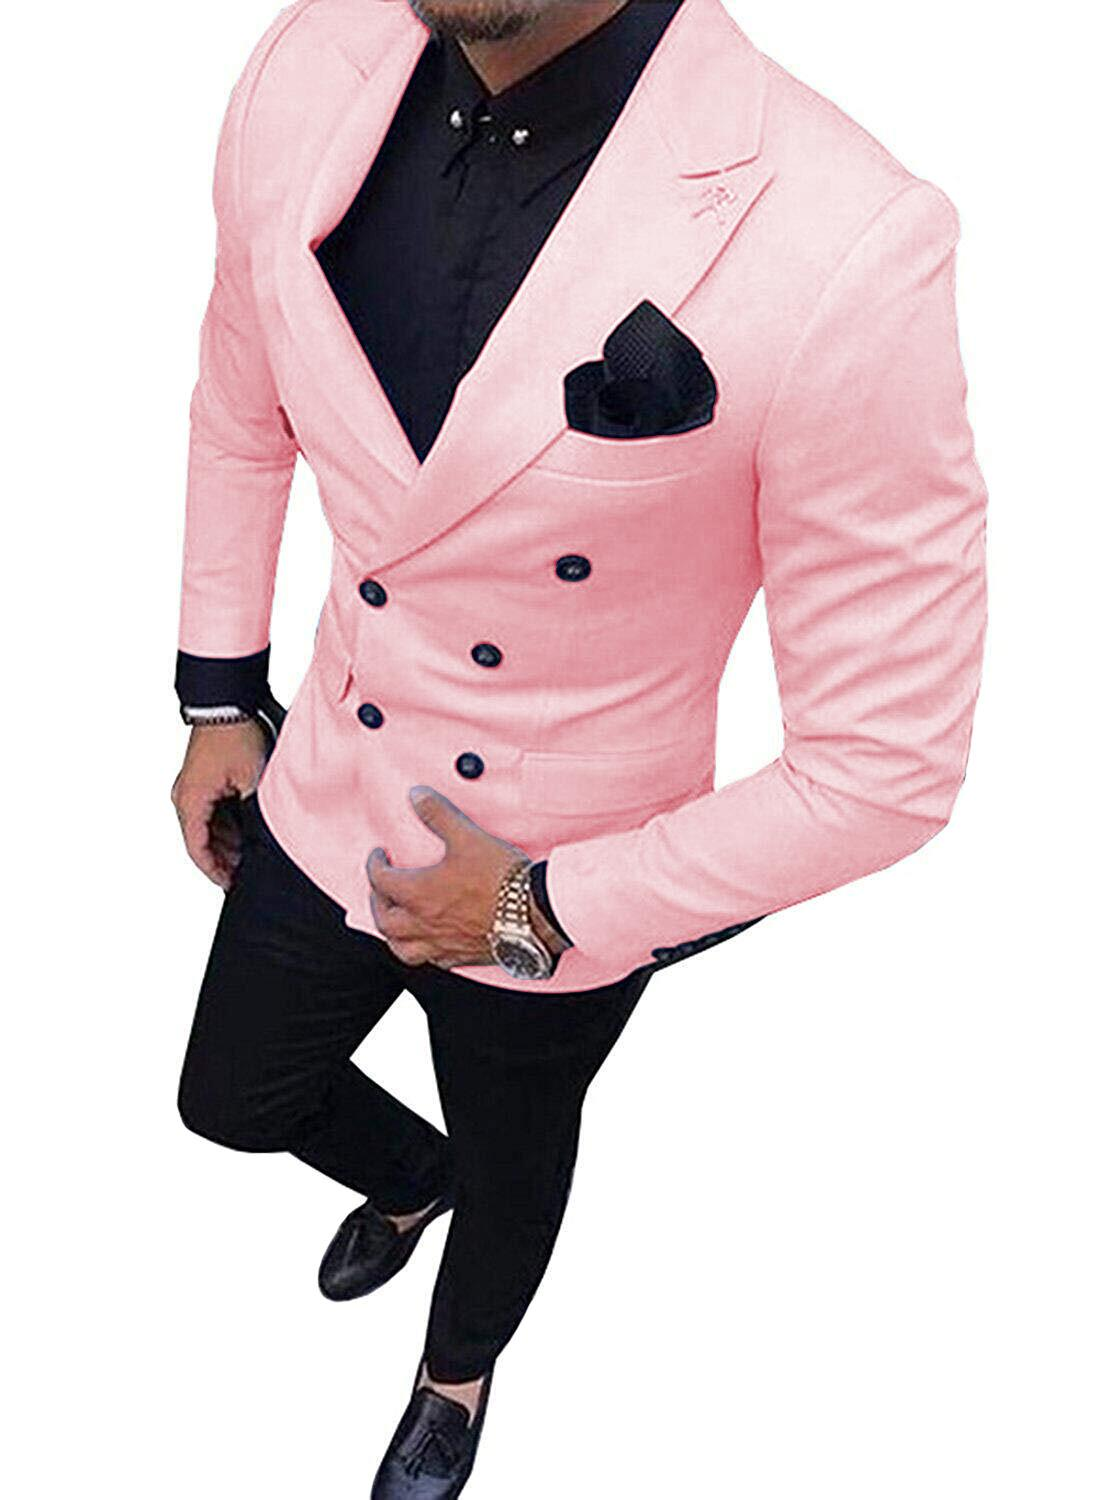 2 Pieces Mens Suits Slim Fit Business Double-breasted Suits Groom Tweed Wool Pink Tuxedos For Evening Wedding (Blazer+Pants)